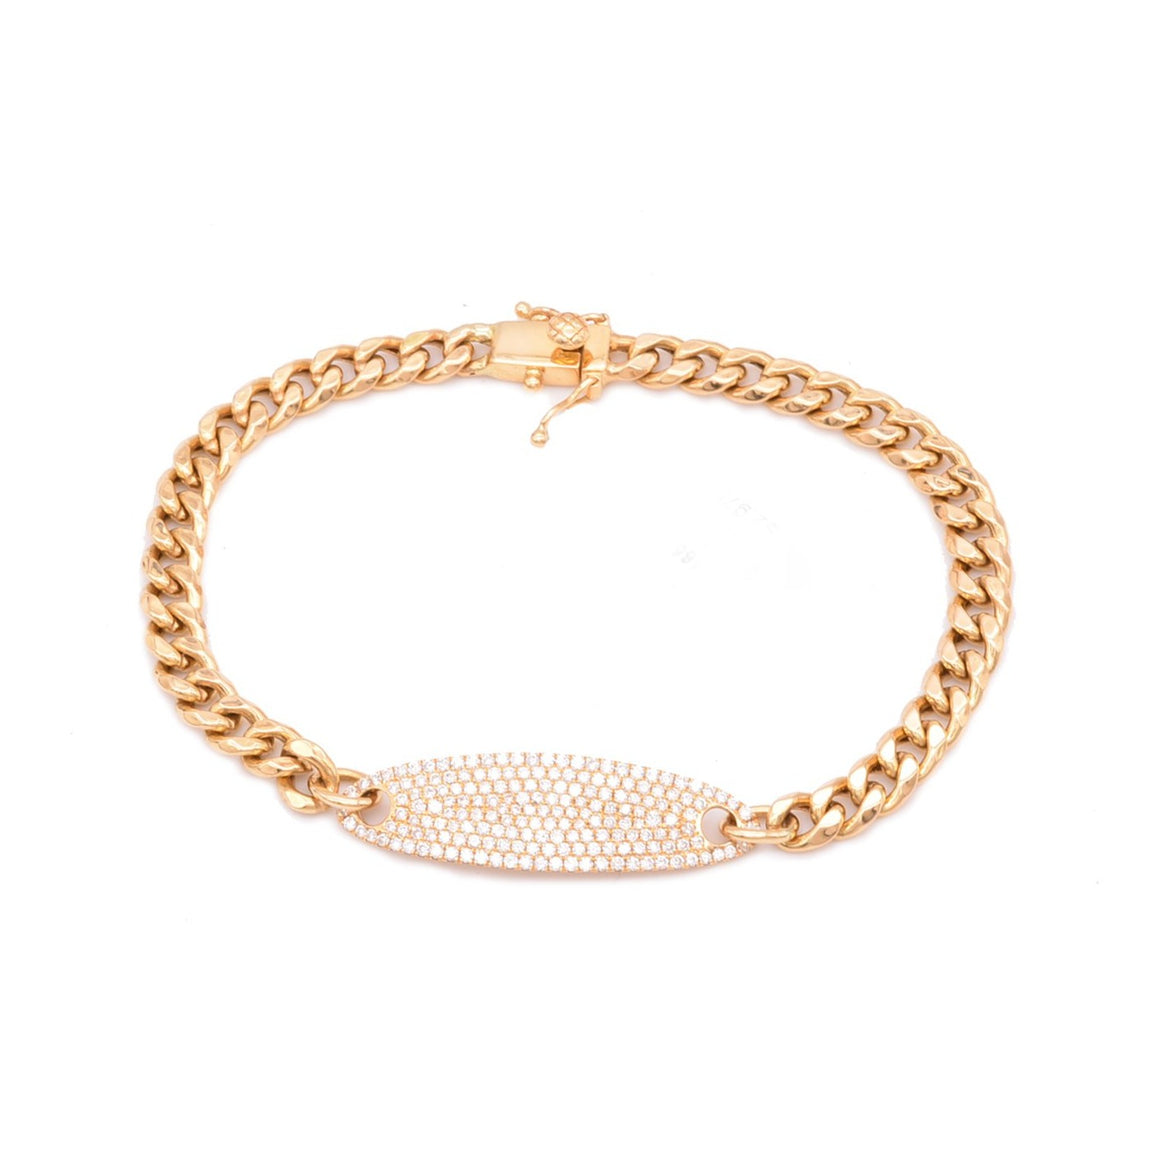 Diamond oval ID bracelet - Lesley Ann Jewels